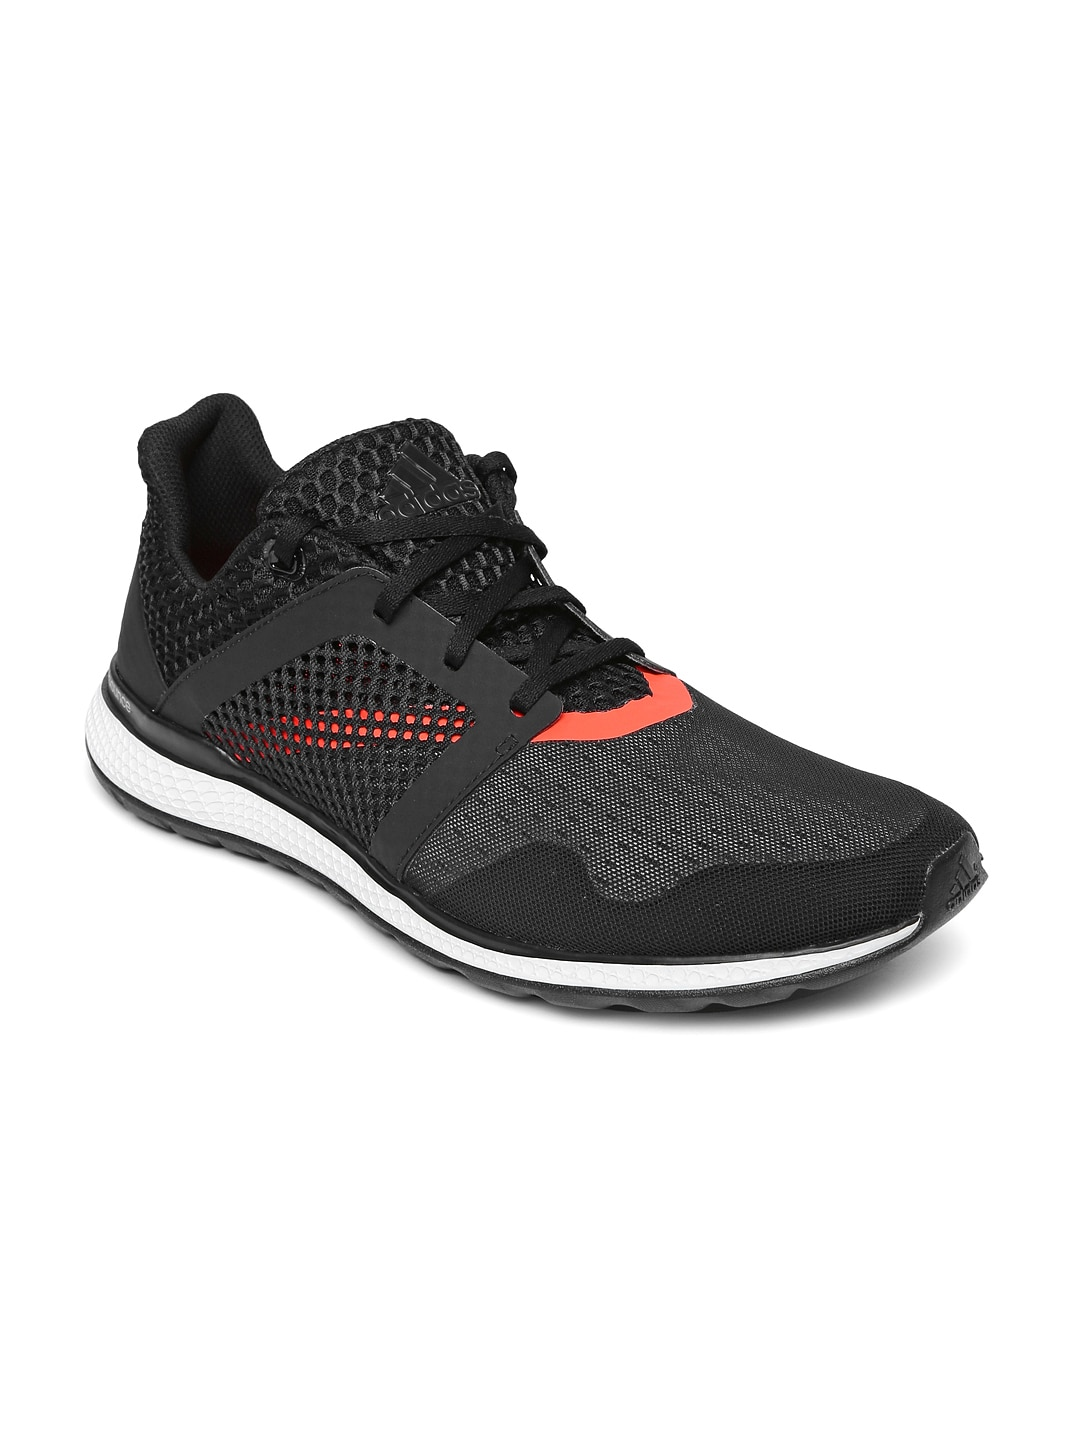 Adidas b49587 Men Black Energy Bounce 2 M Running Shoes- Price in India 40471a84c